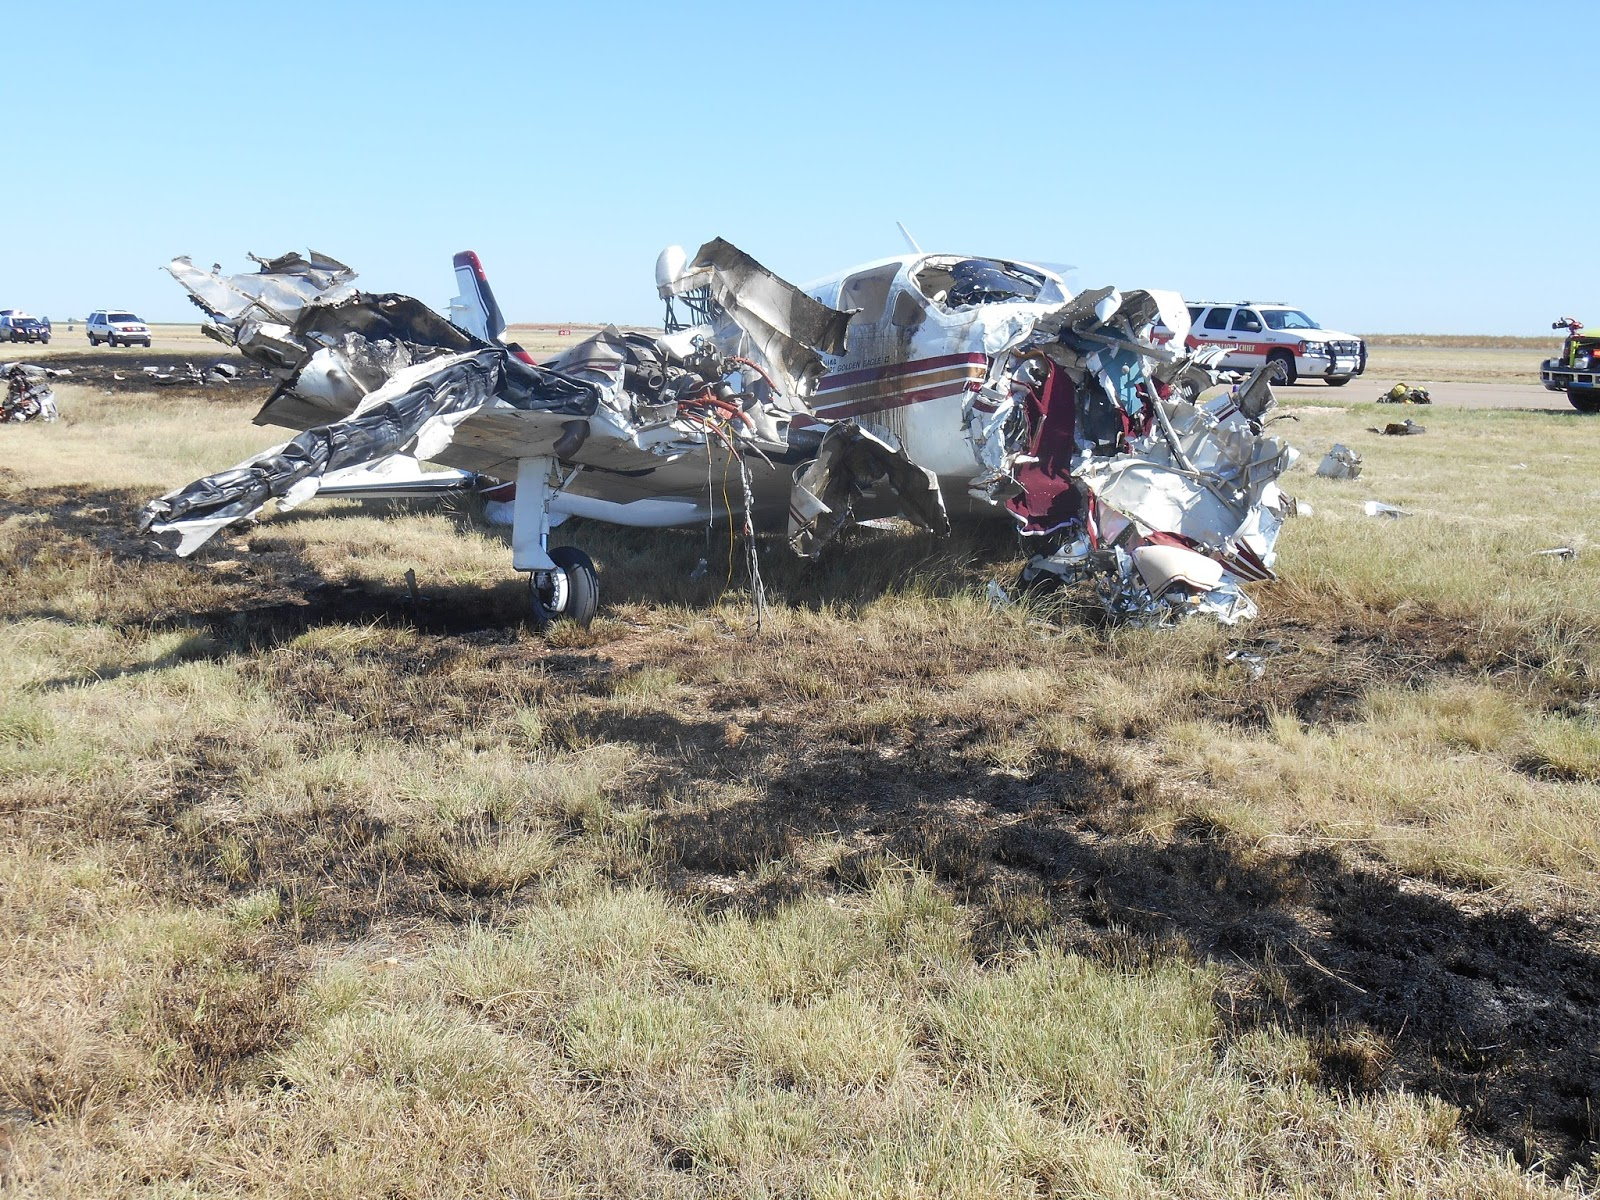 New mexico curry county clovis - Cessna 421b Golden Eagle N726jb Accident Occurred August 09 2015 At Clovis Municipal Airport Kcvn Curry County New Mexico